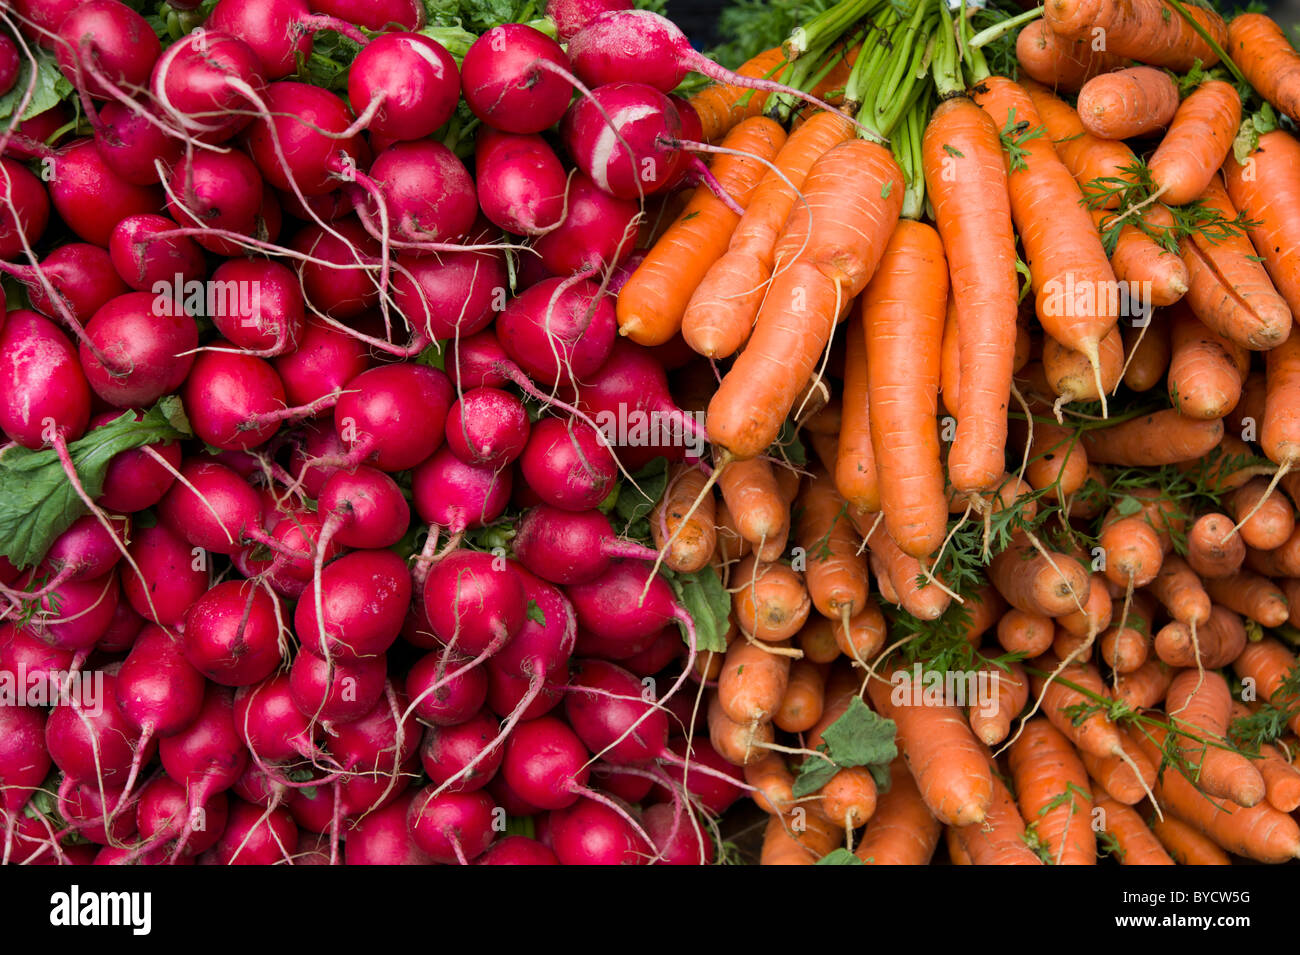 Radishes and carrots on vegetable market stall - Stock Image